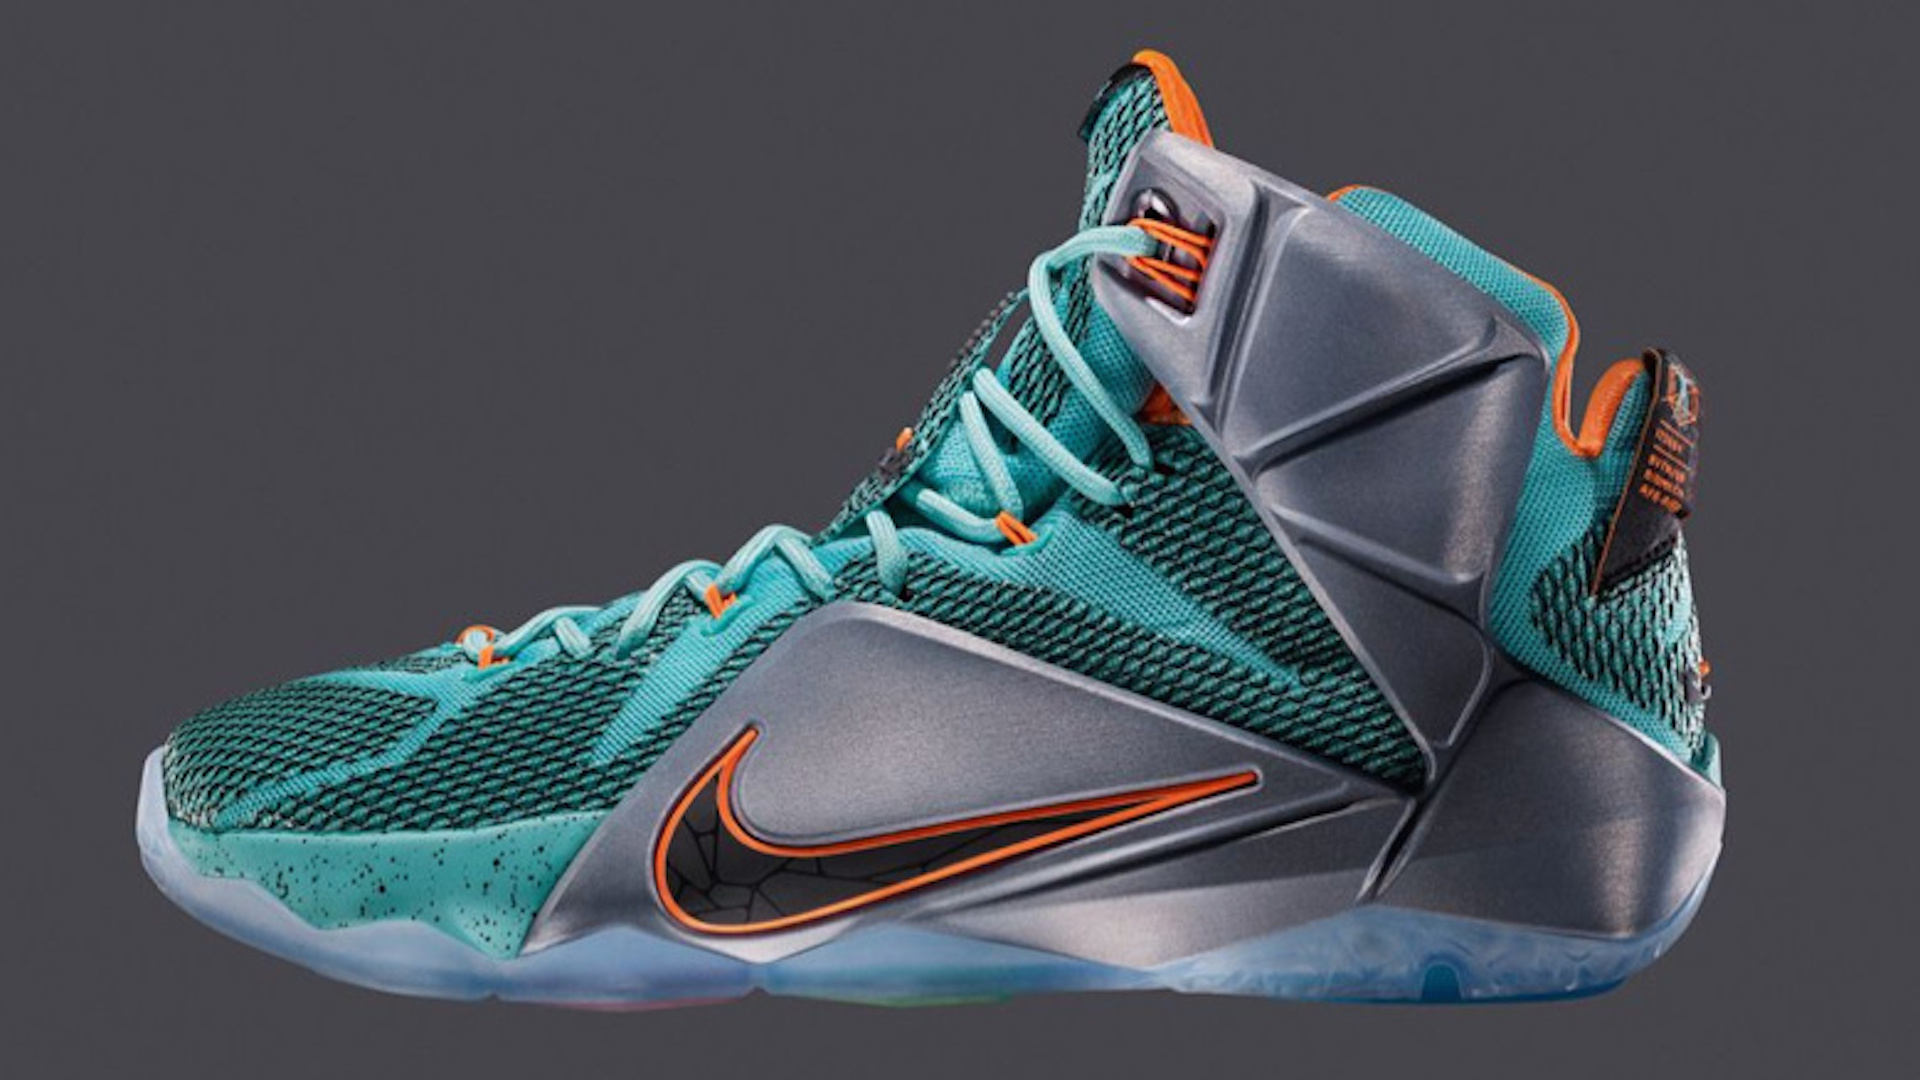 8243a81ee58 Nike releases newest LeBron James signature shoe in LeBron 12 ...